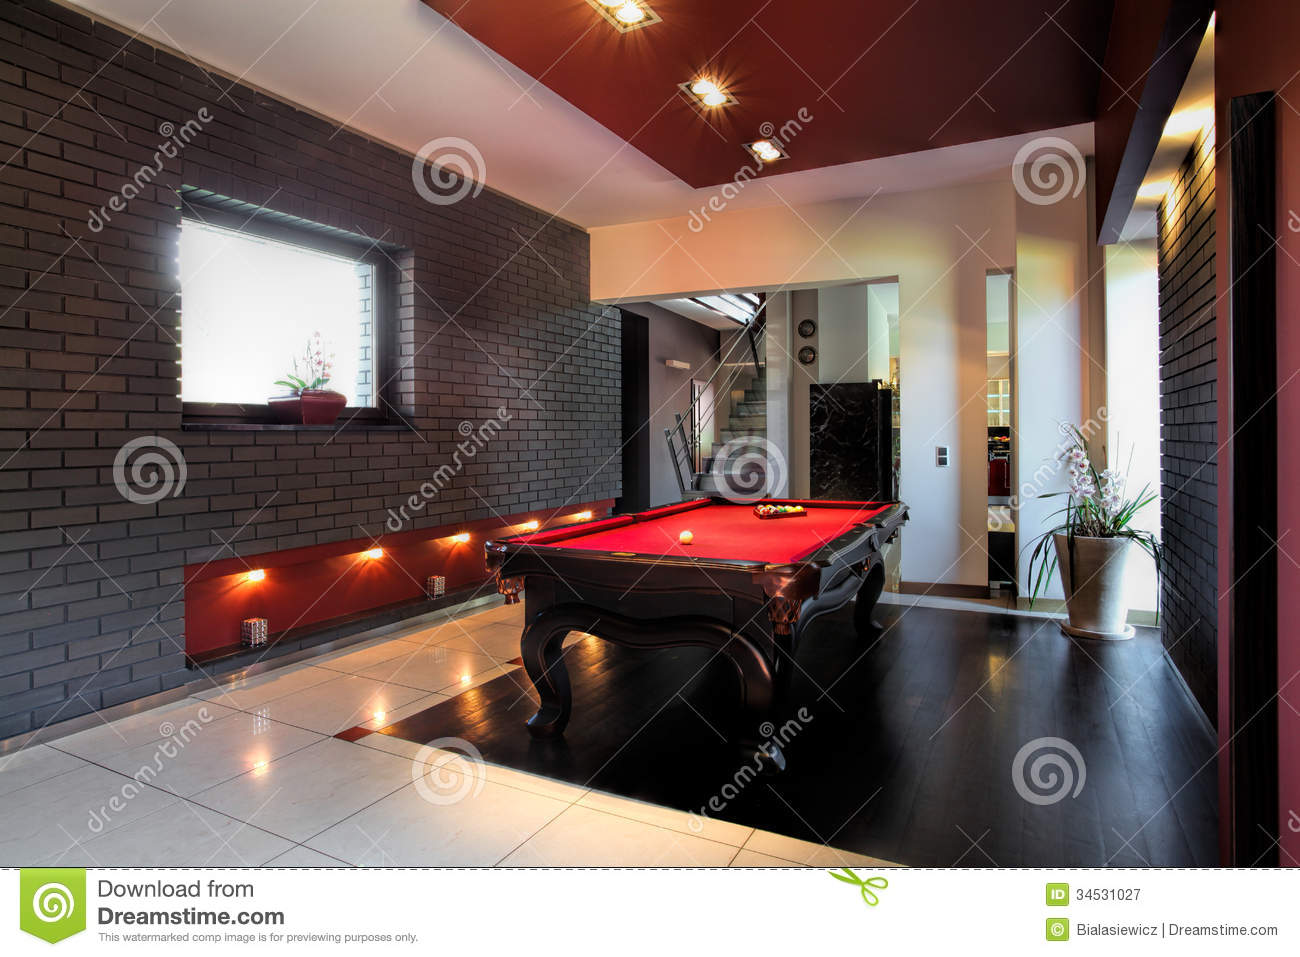 Contemporary Interior With A Snooker Table Stock Image